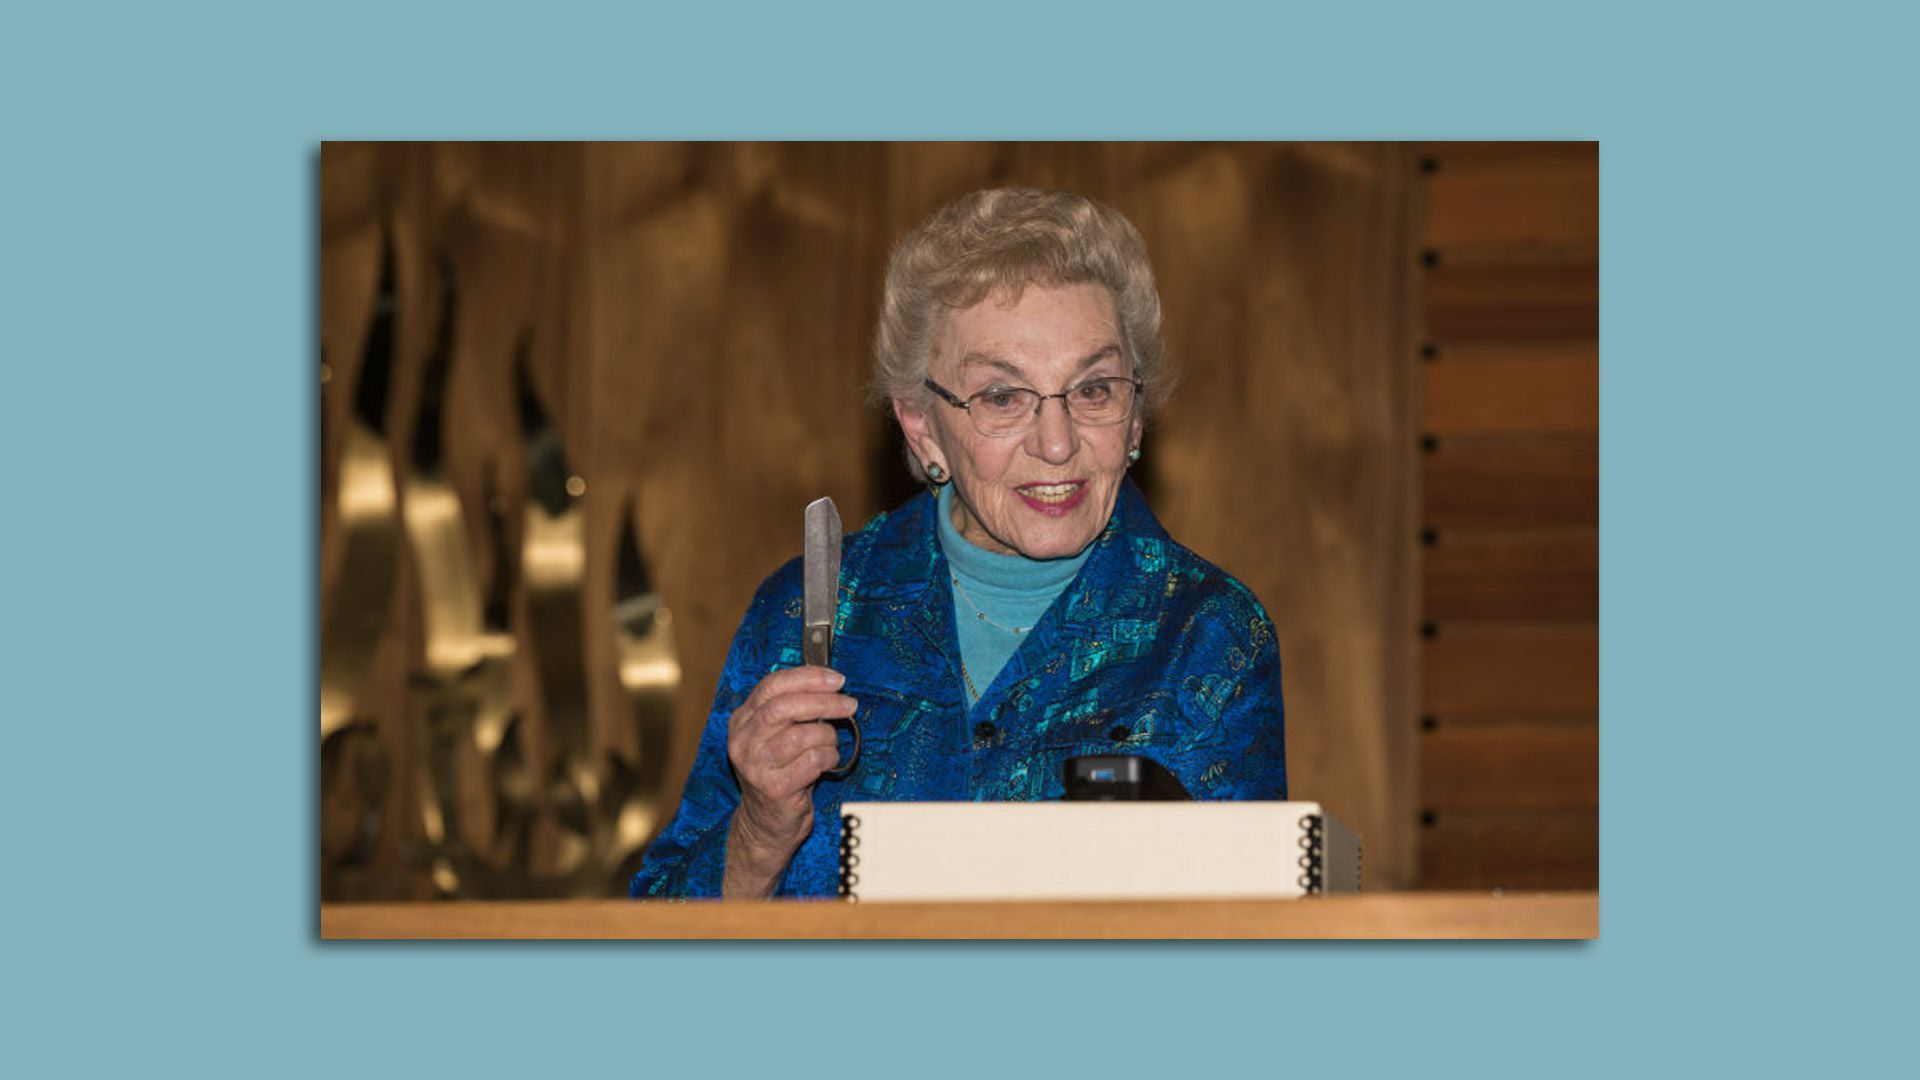 Celina Karp Biniaz holds a pair of scissors Oskar Schindler gave her family to barter for supplies after being liberated from his factory in 1945.